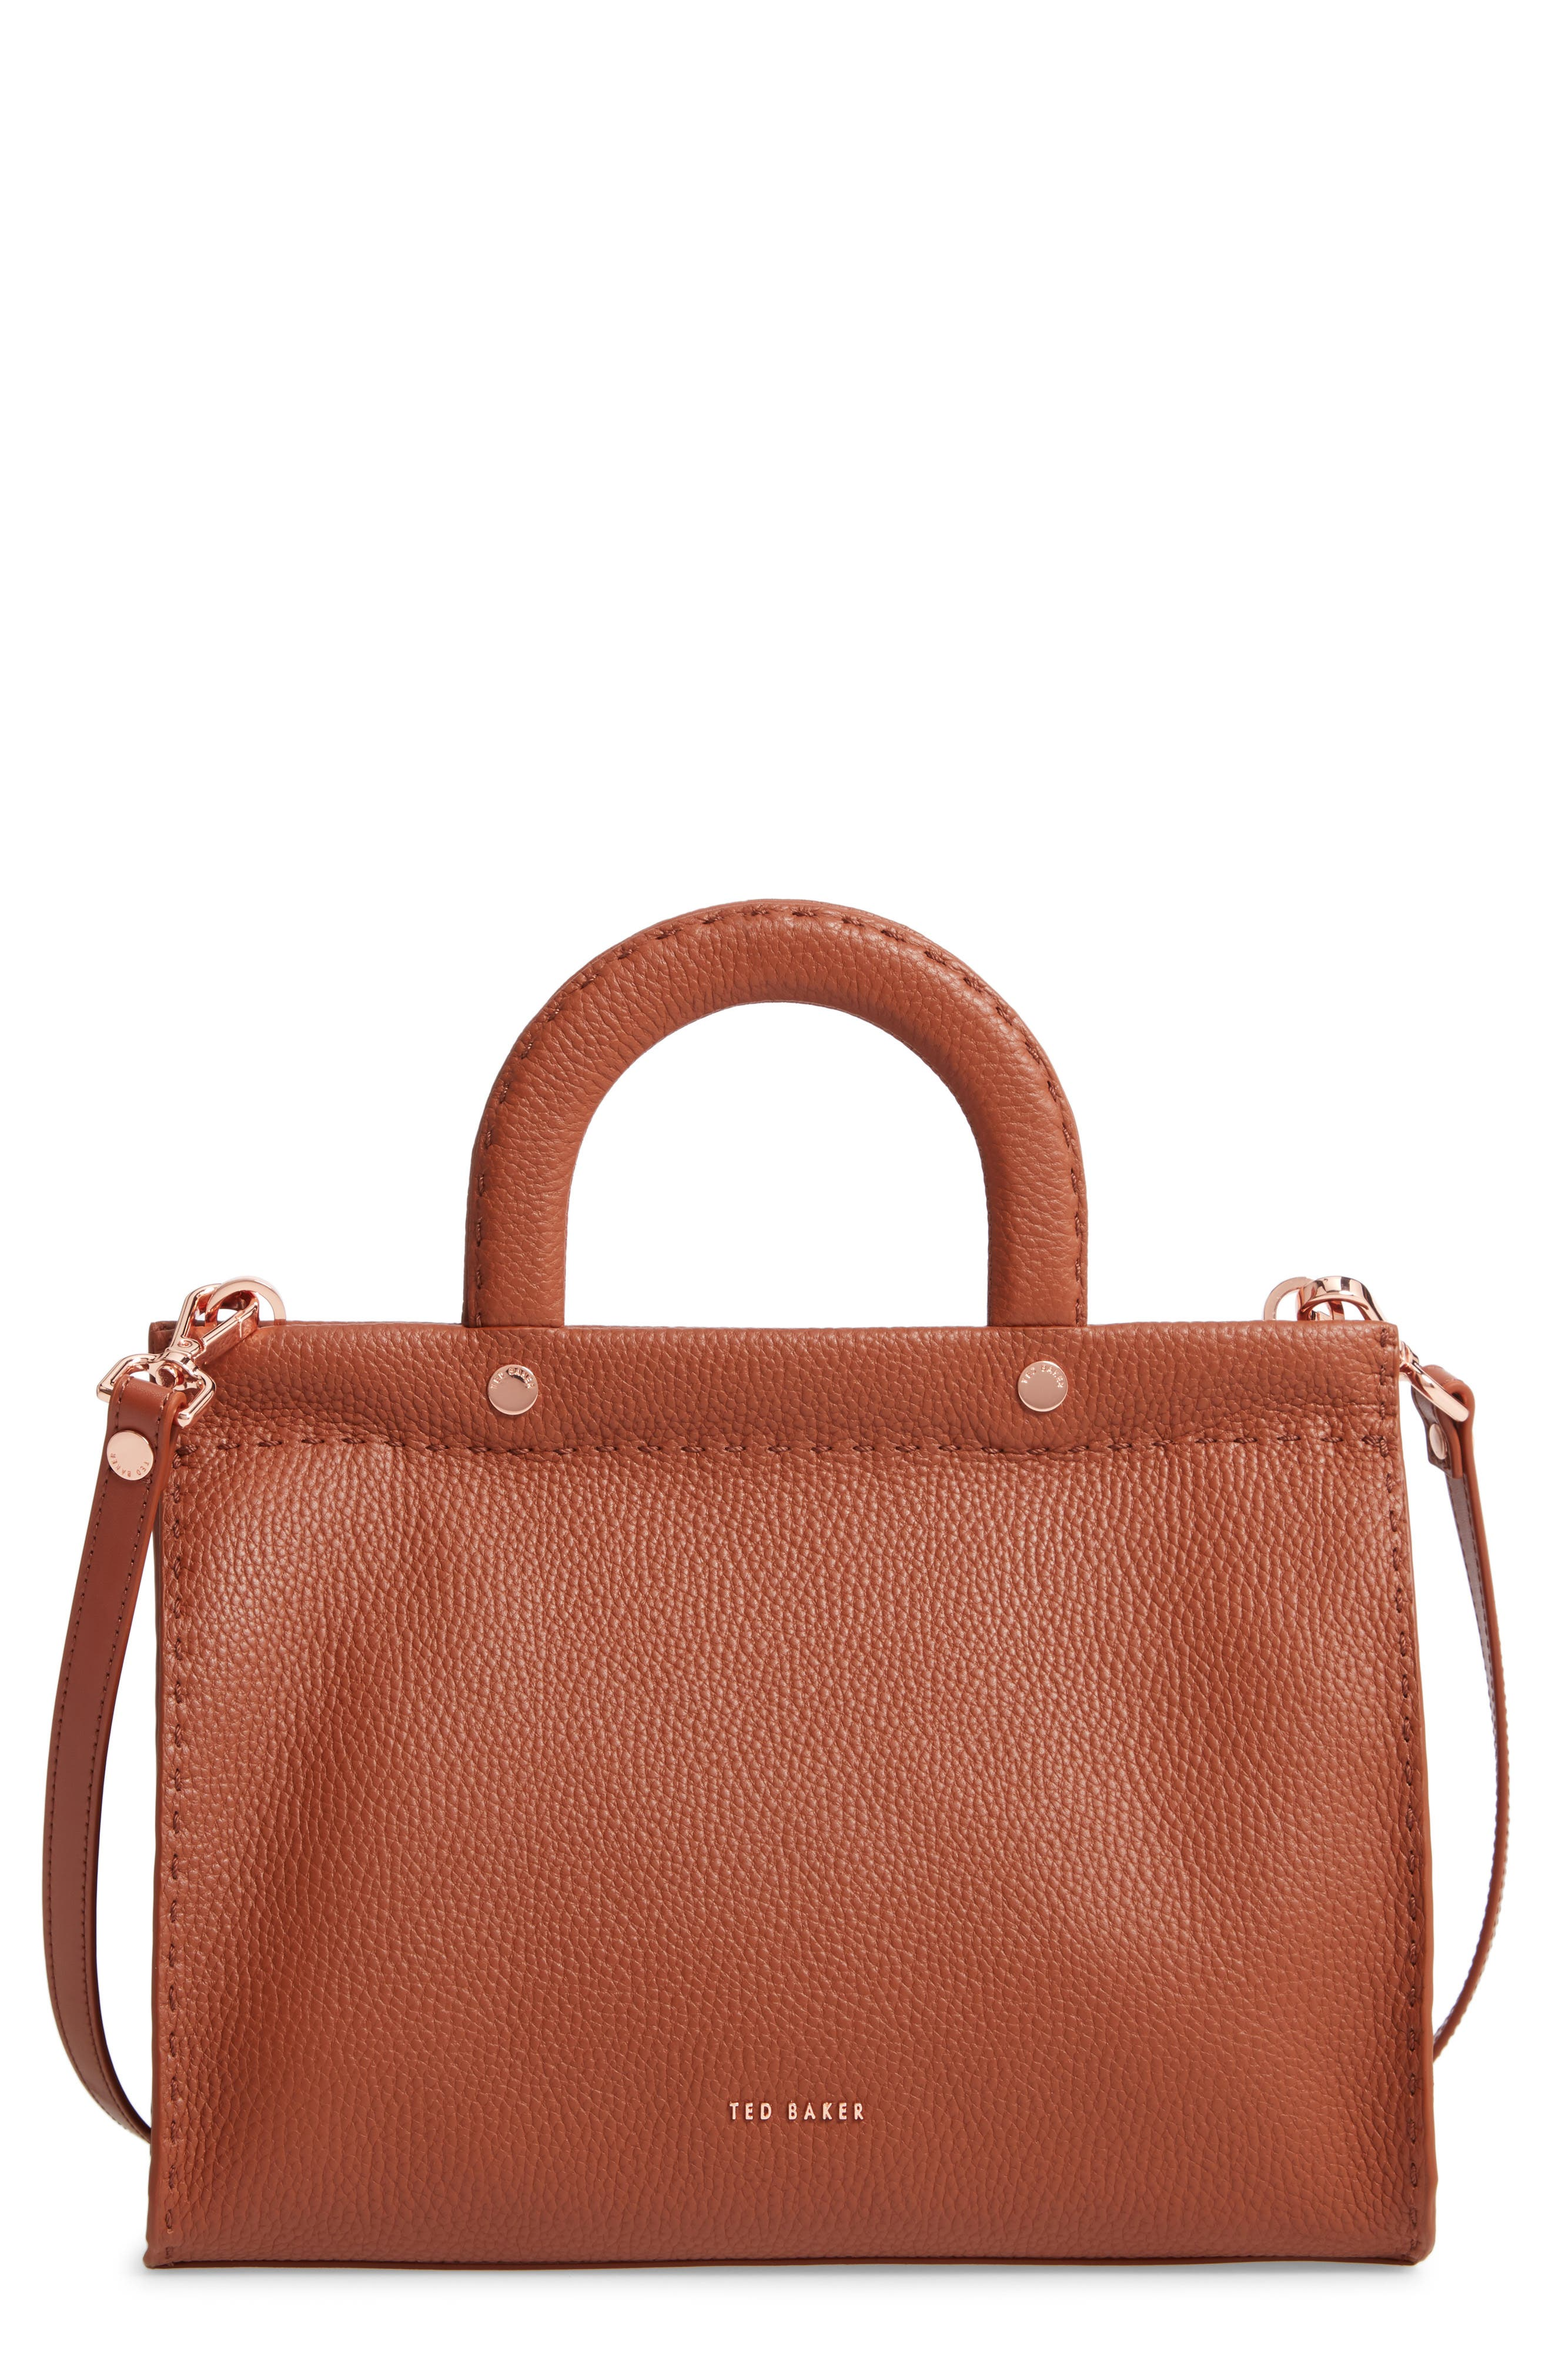 TED BAKER LONDON Monicaa Leather Satchel, Main, color, BROWN